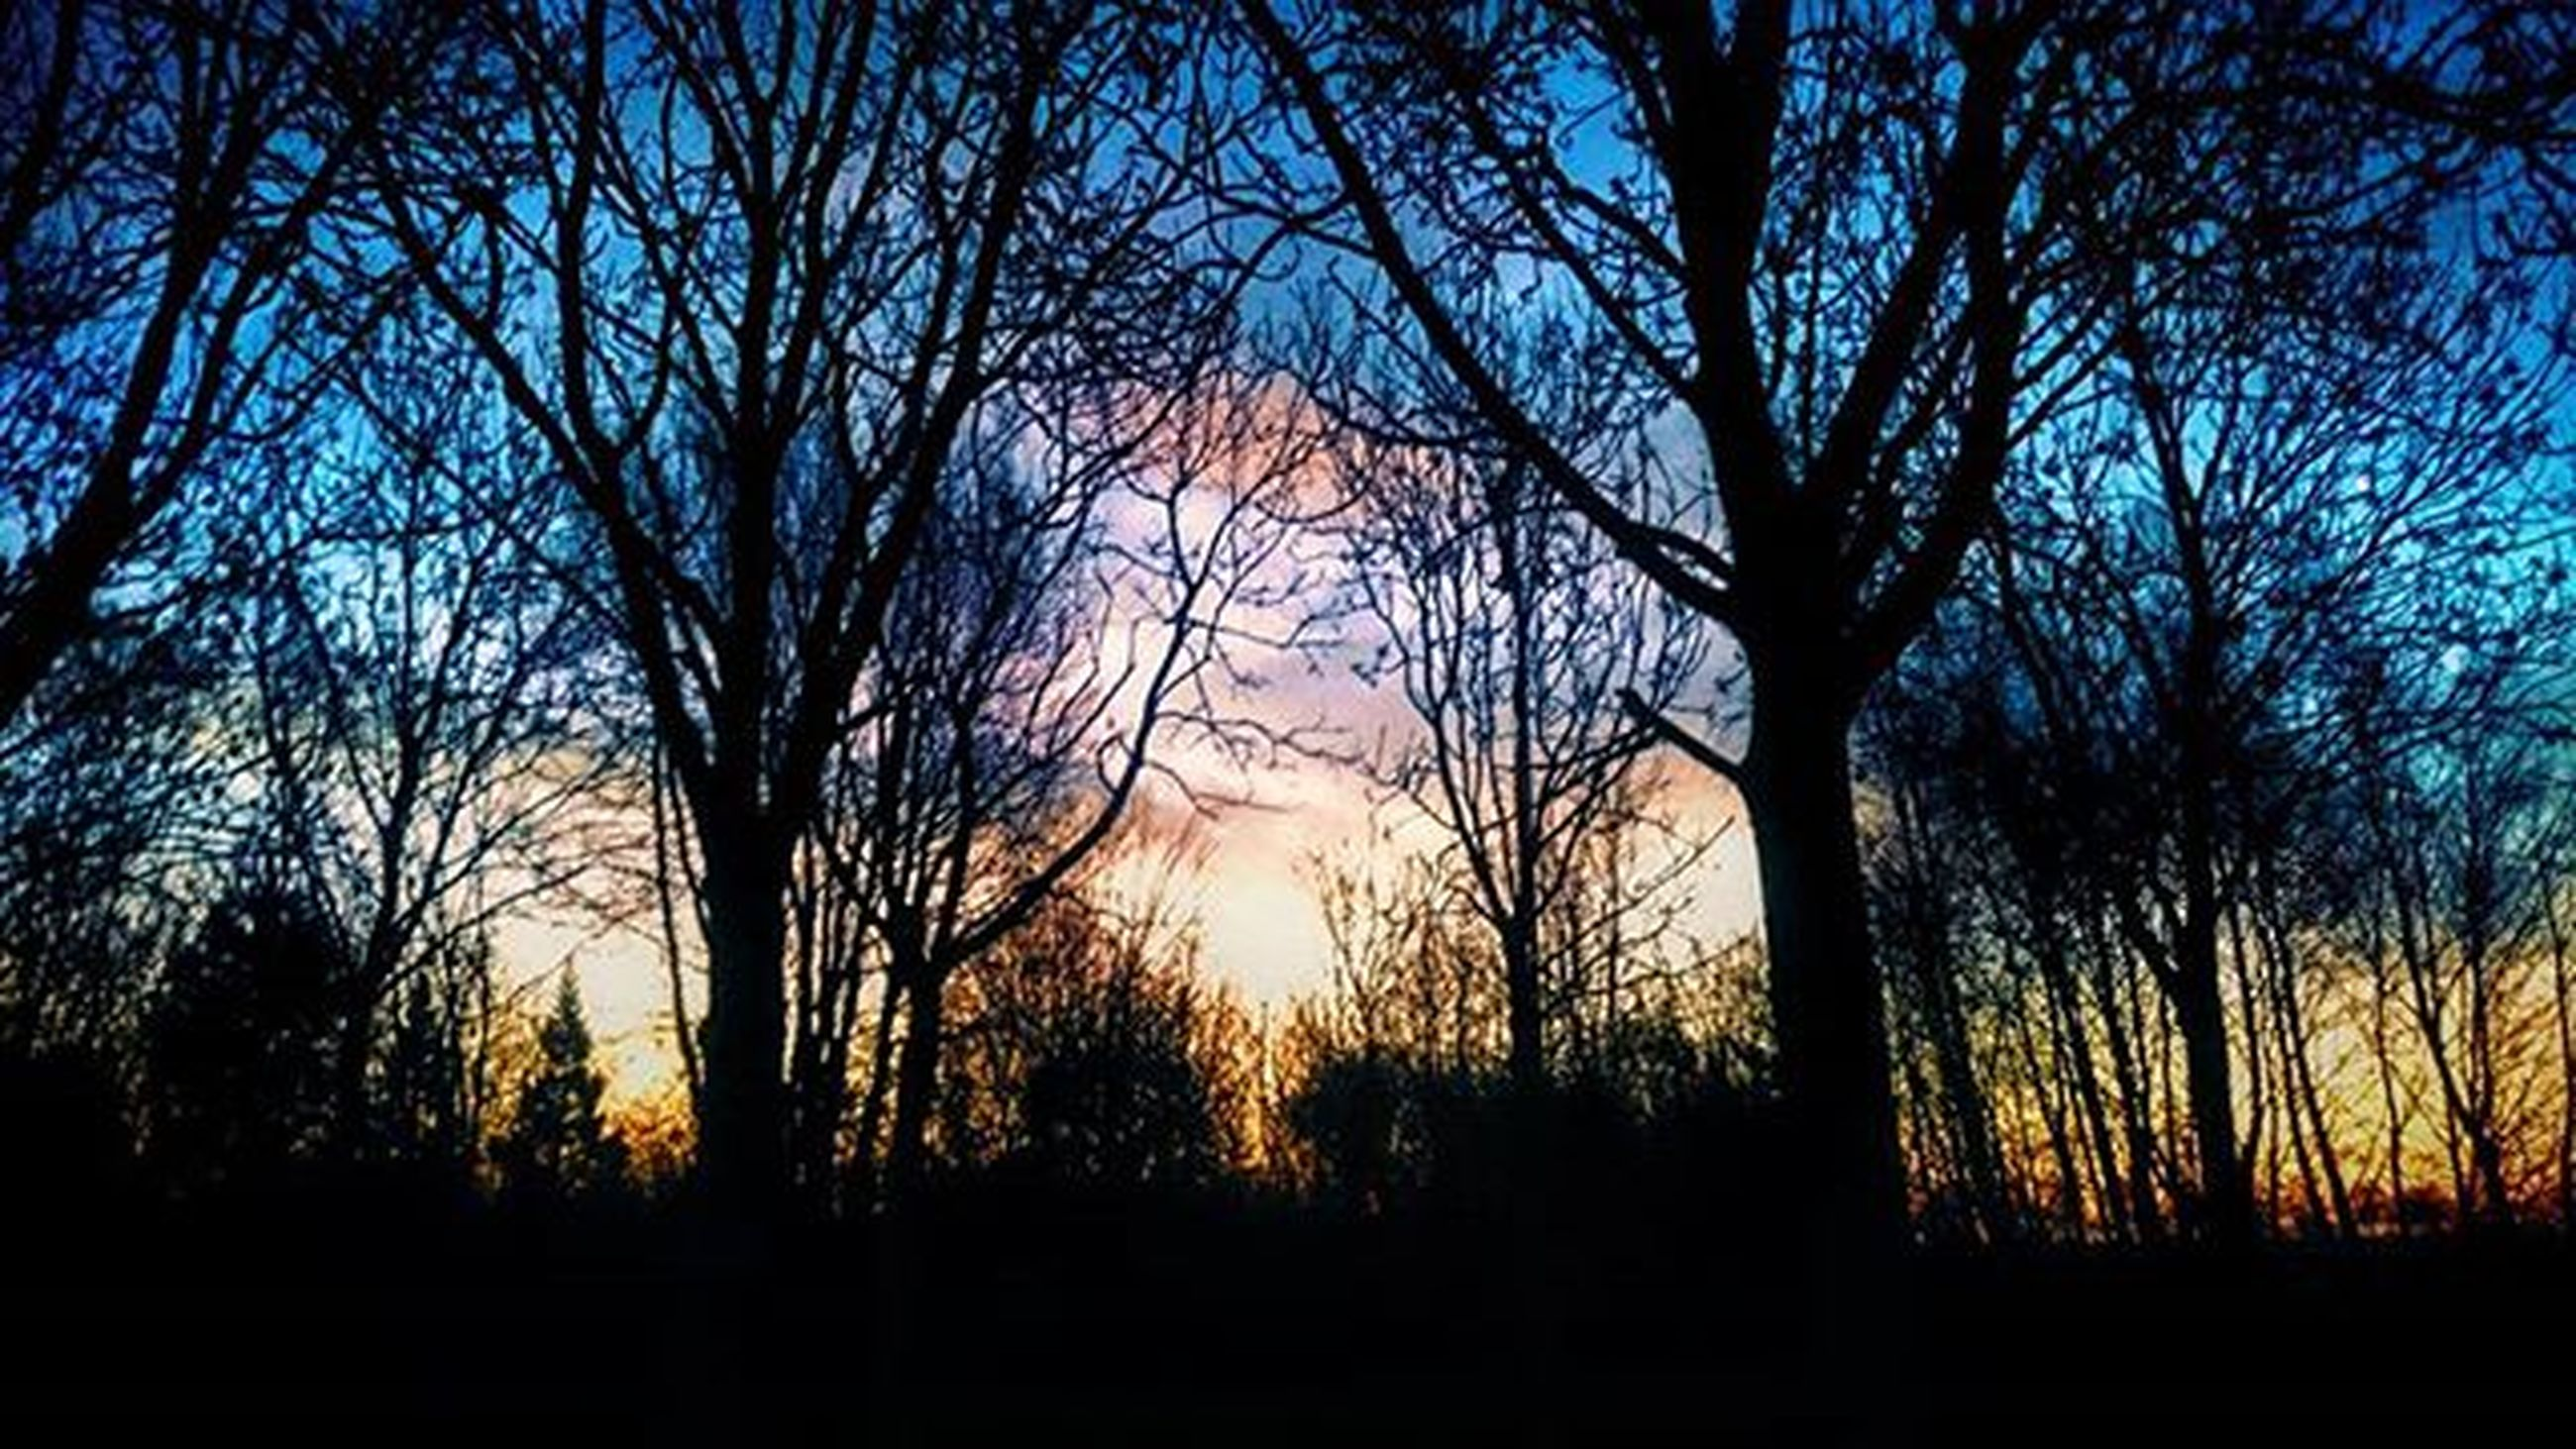 silhouette, tree, sunset, tranquility, tranquil scene, scenics, beauty in nature, bare tree, sky, nature, branch, idyllic, landscape, dark, non-urban scene, growth, forest, outdoors, tree trunk, dusk